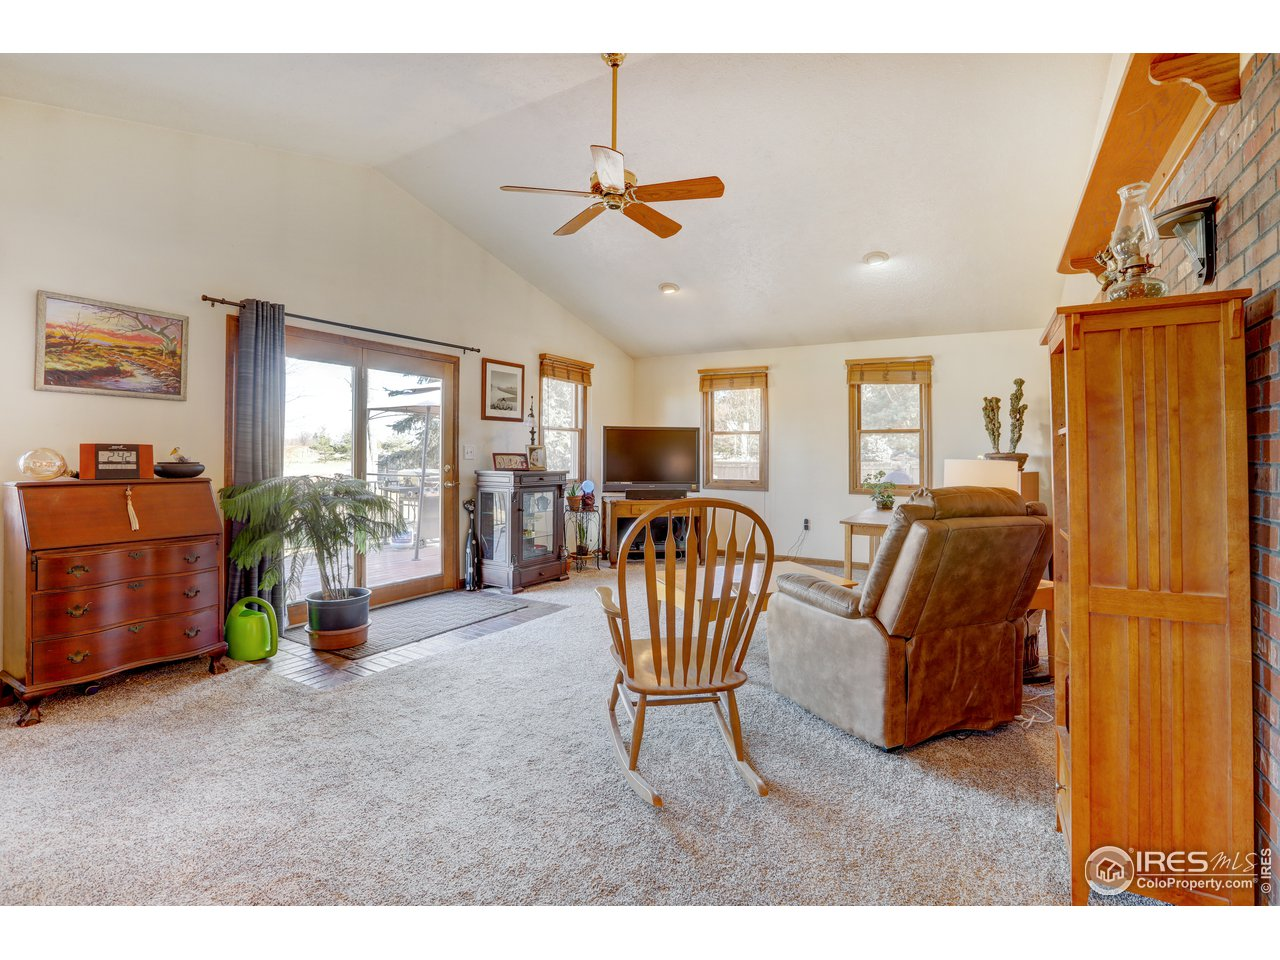 Vaulted ceilings & ceiling fan. Access to rear deck.